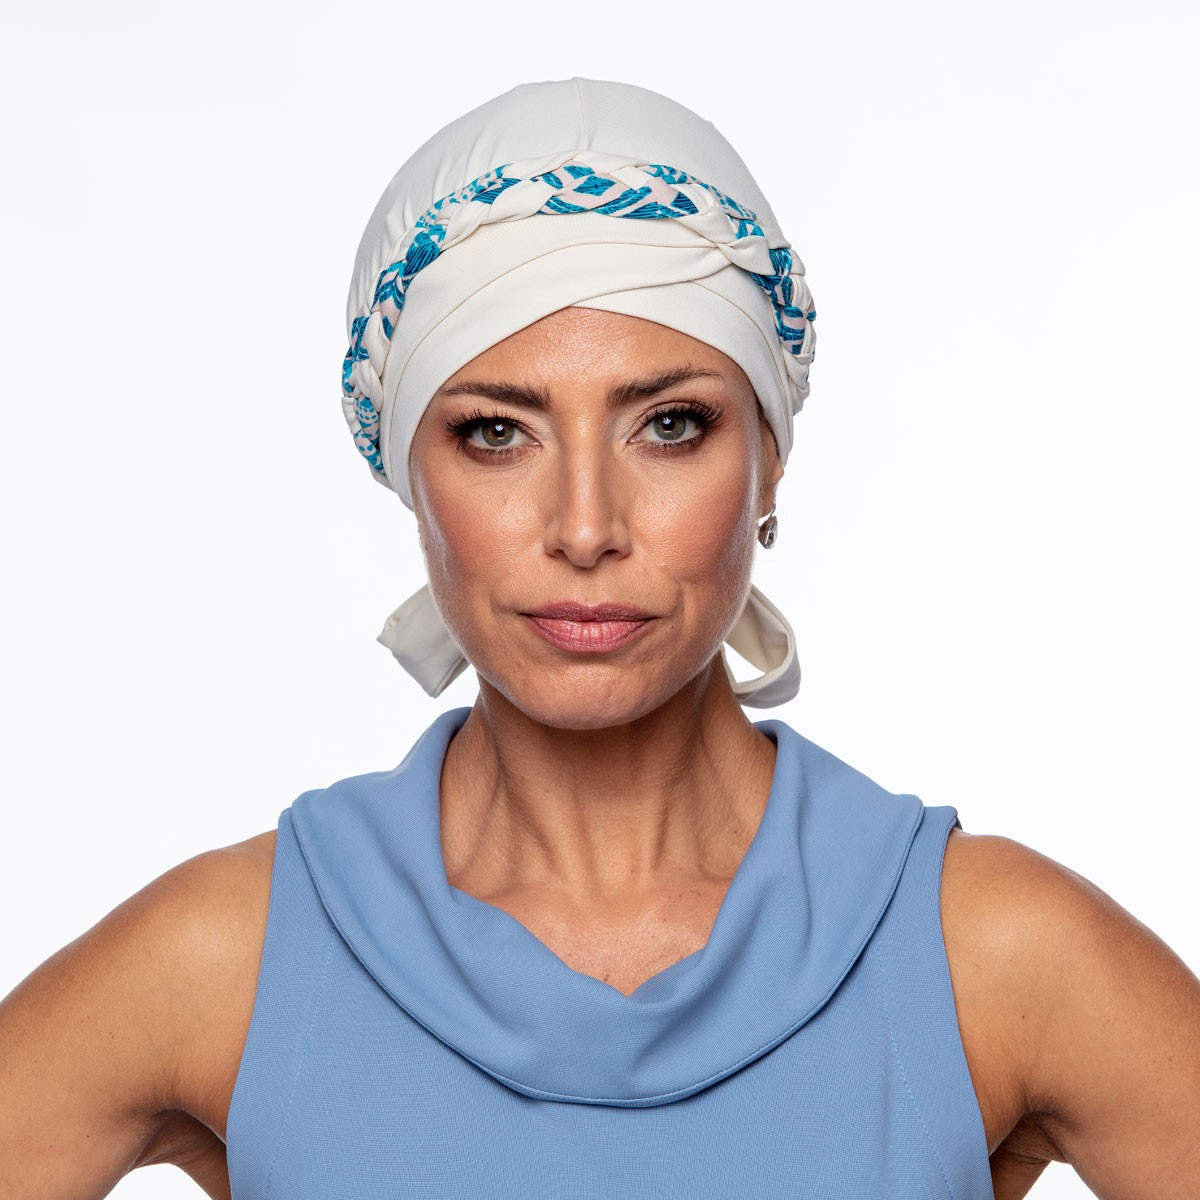 Turbante Feminino Trançado Giovanna Off White com Estampas